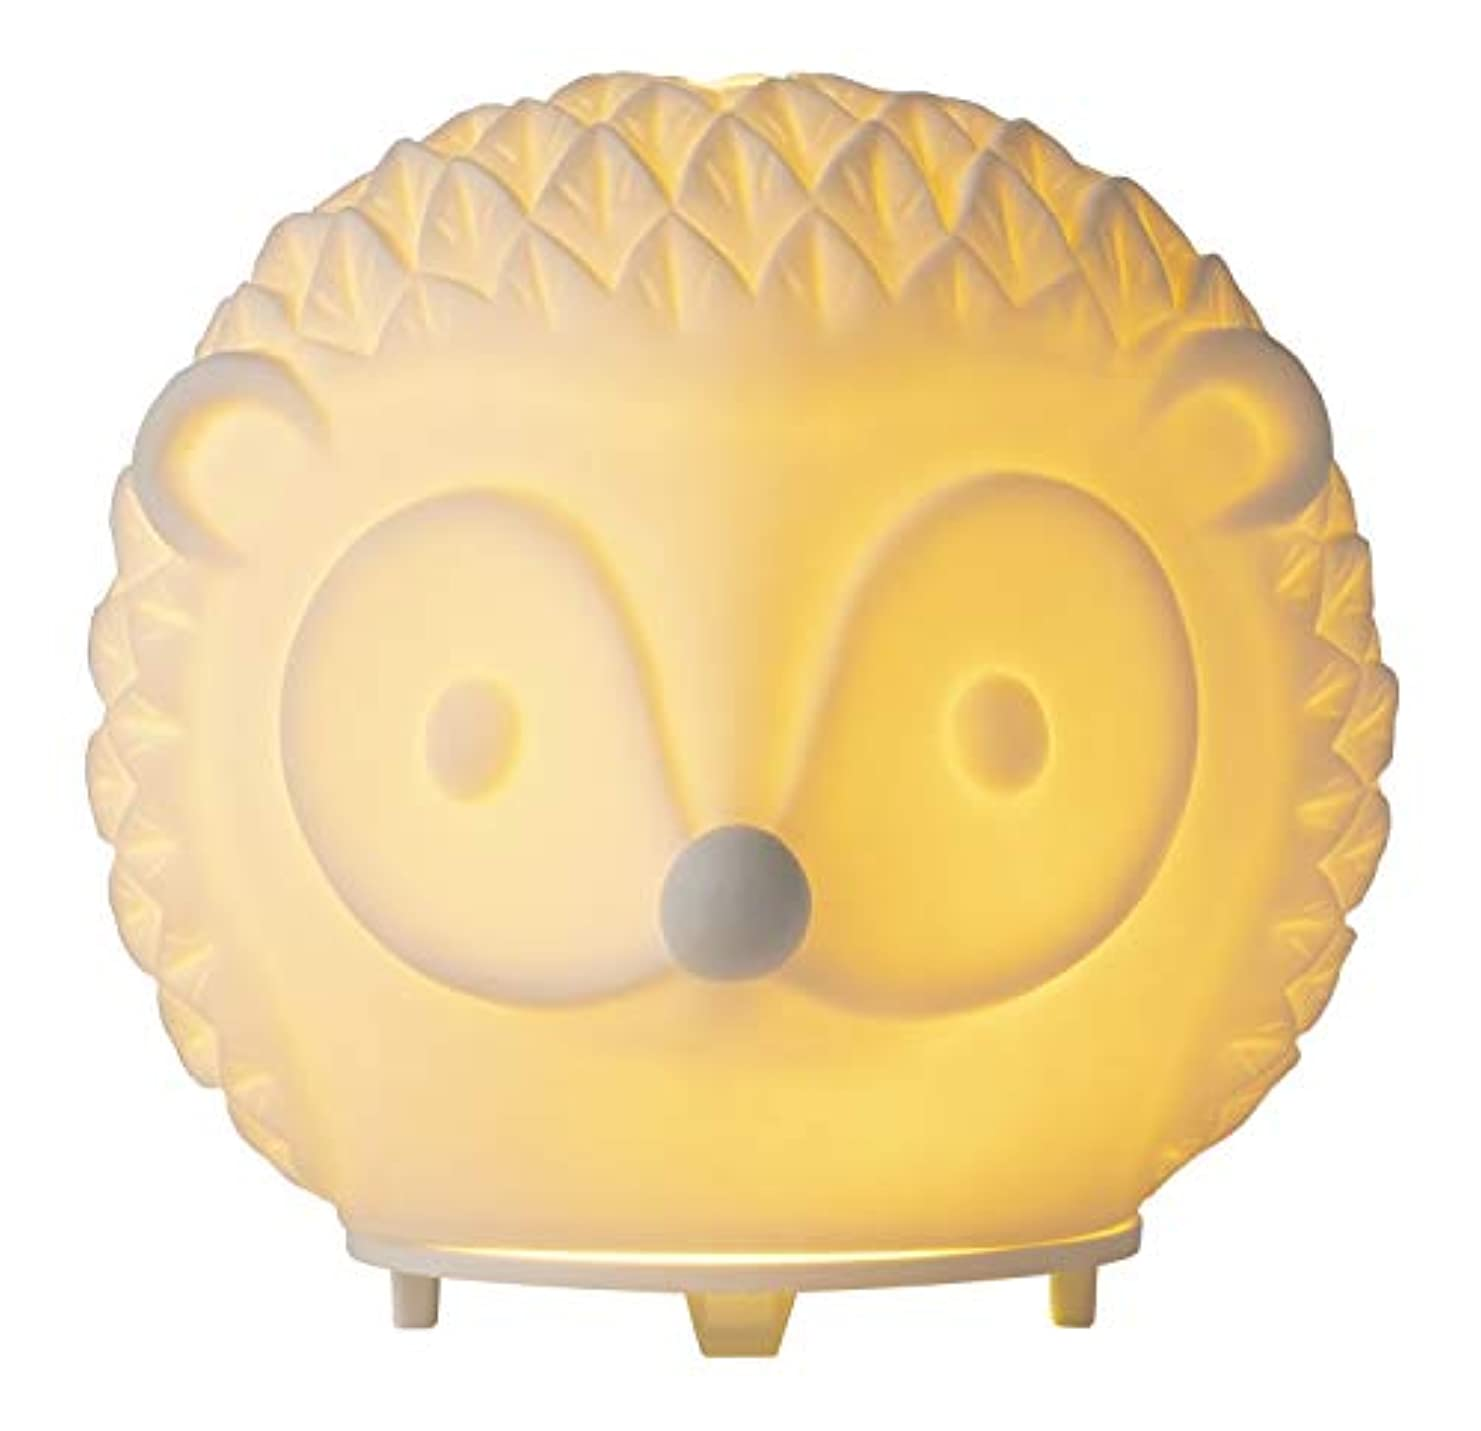 SIMPLE MIND AROMA DIFFUSER HEDGEHOG アロマディフューザー SMAR-005-WH